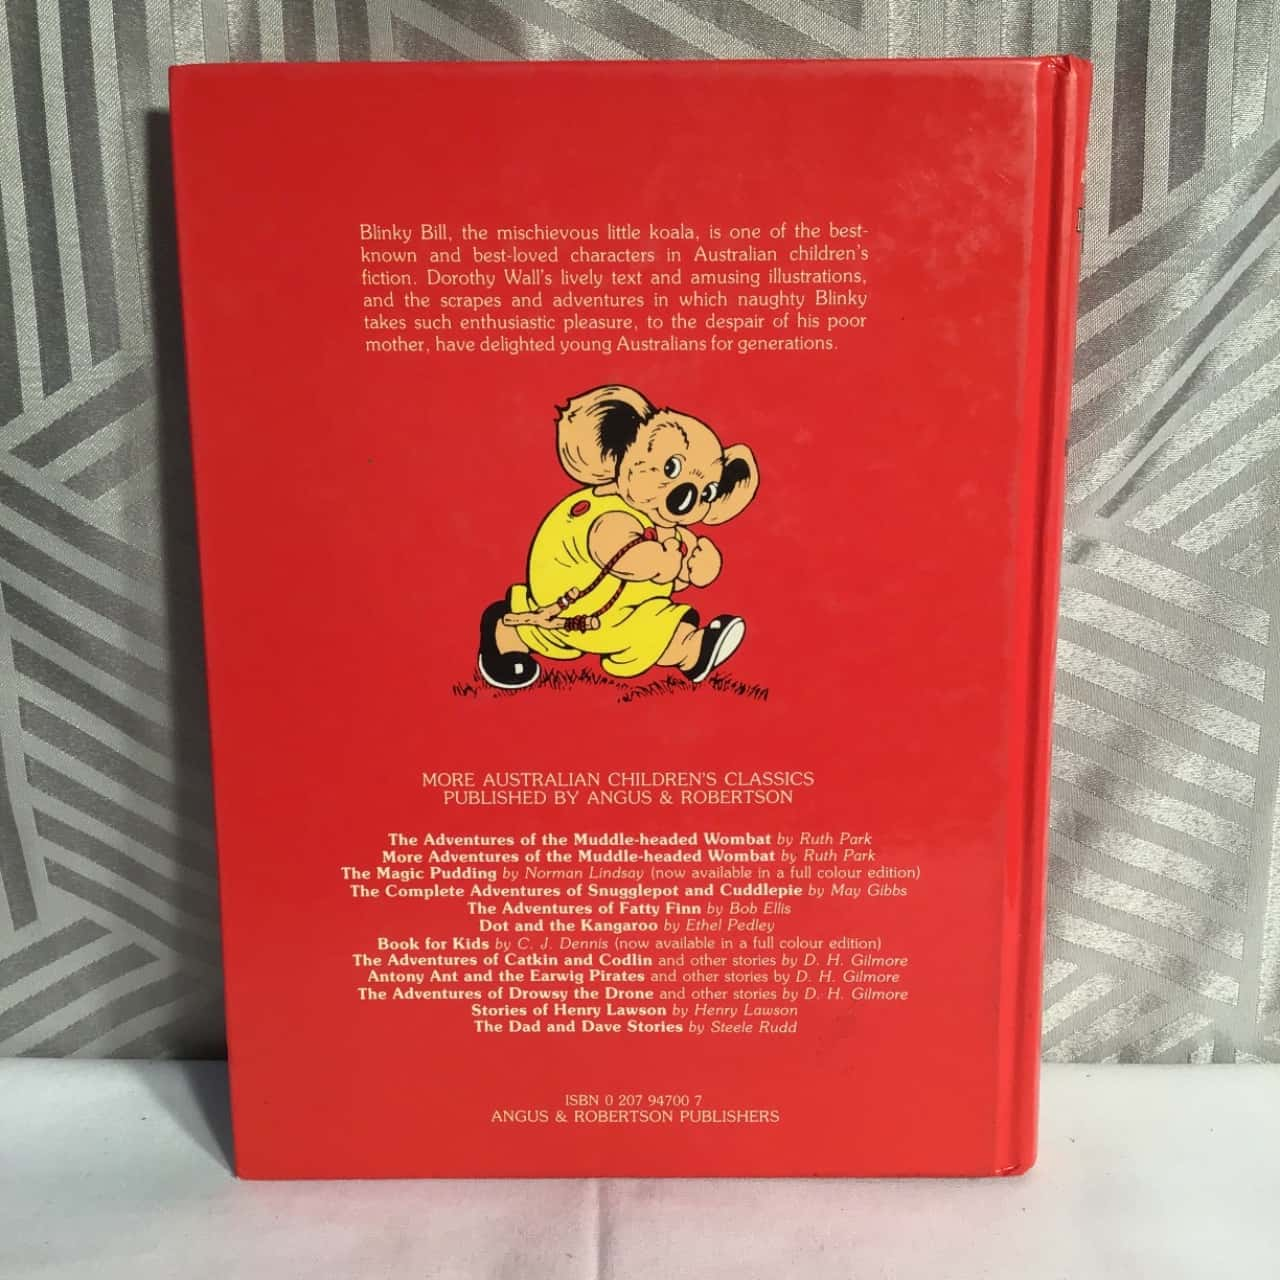 The Complete Adventures Of Blinky Bill By Dorothy Wall